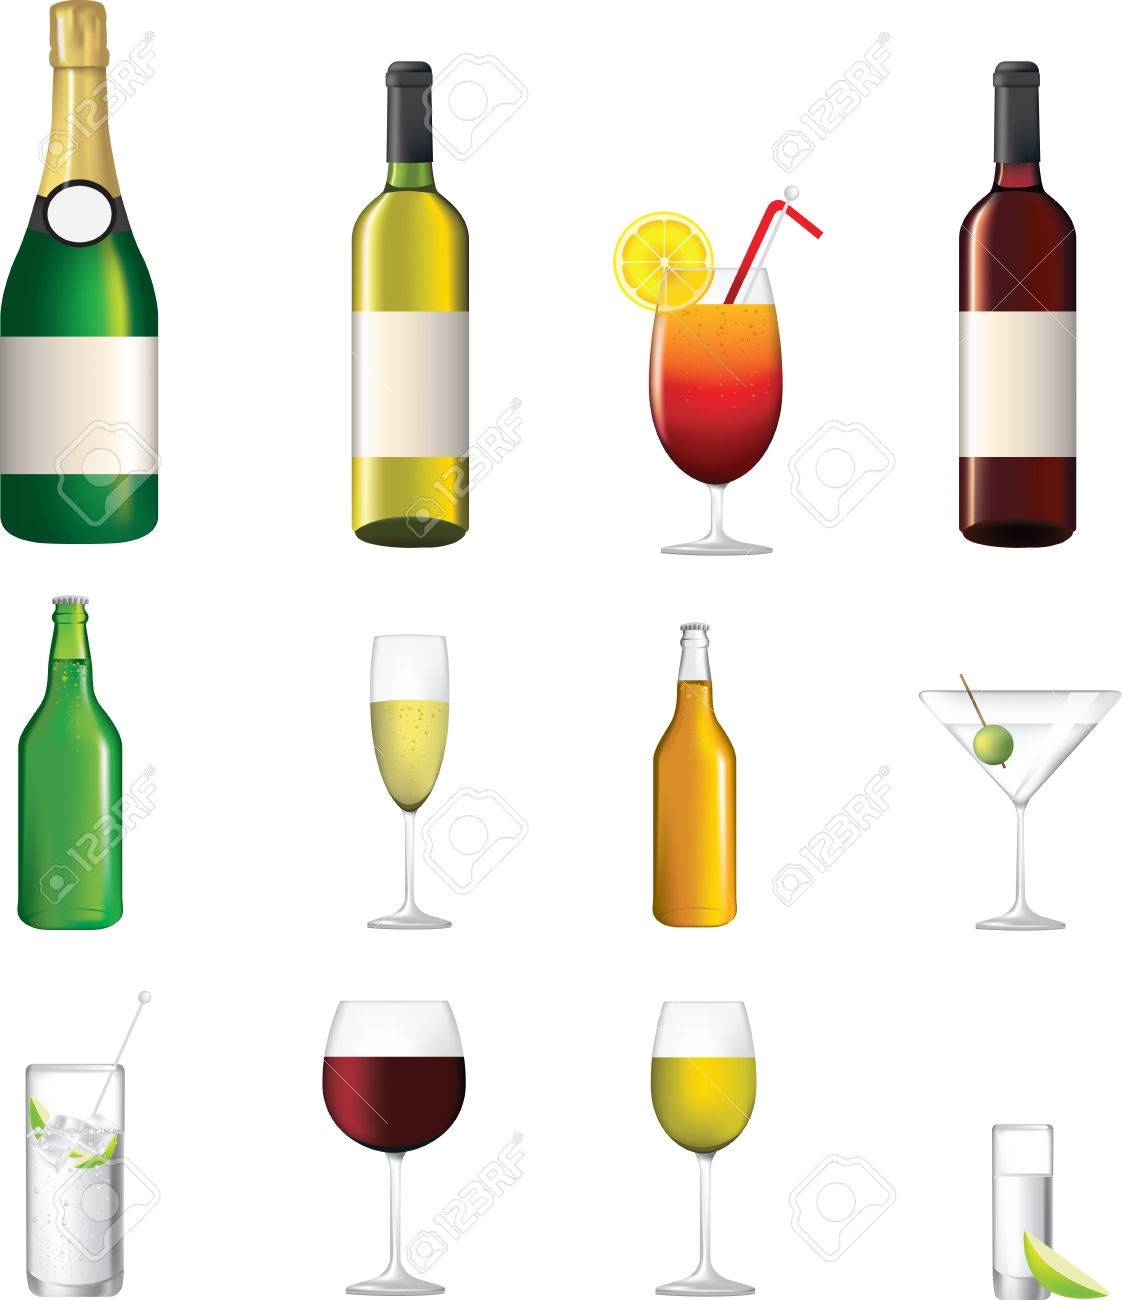 wine, champagne, shorts, cocktails, illustrations of alcoholic drinks Stock Vector - 8877816